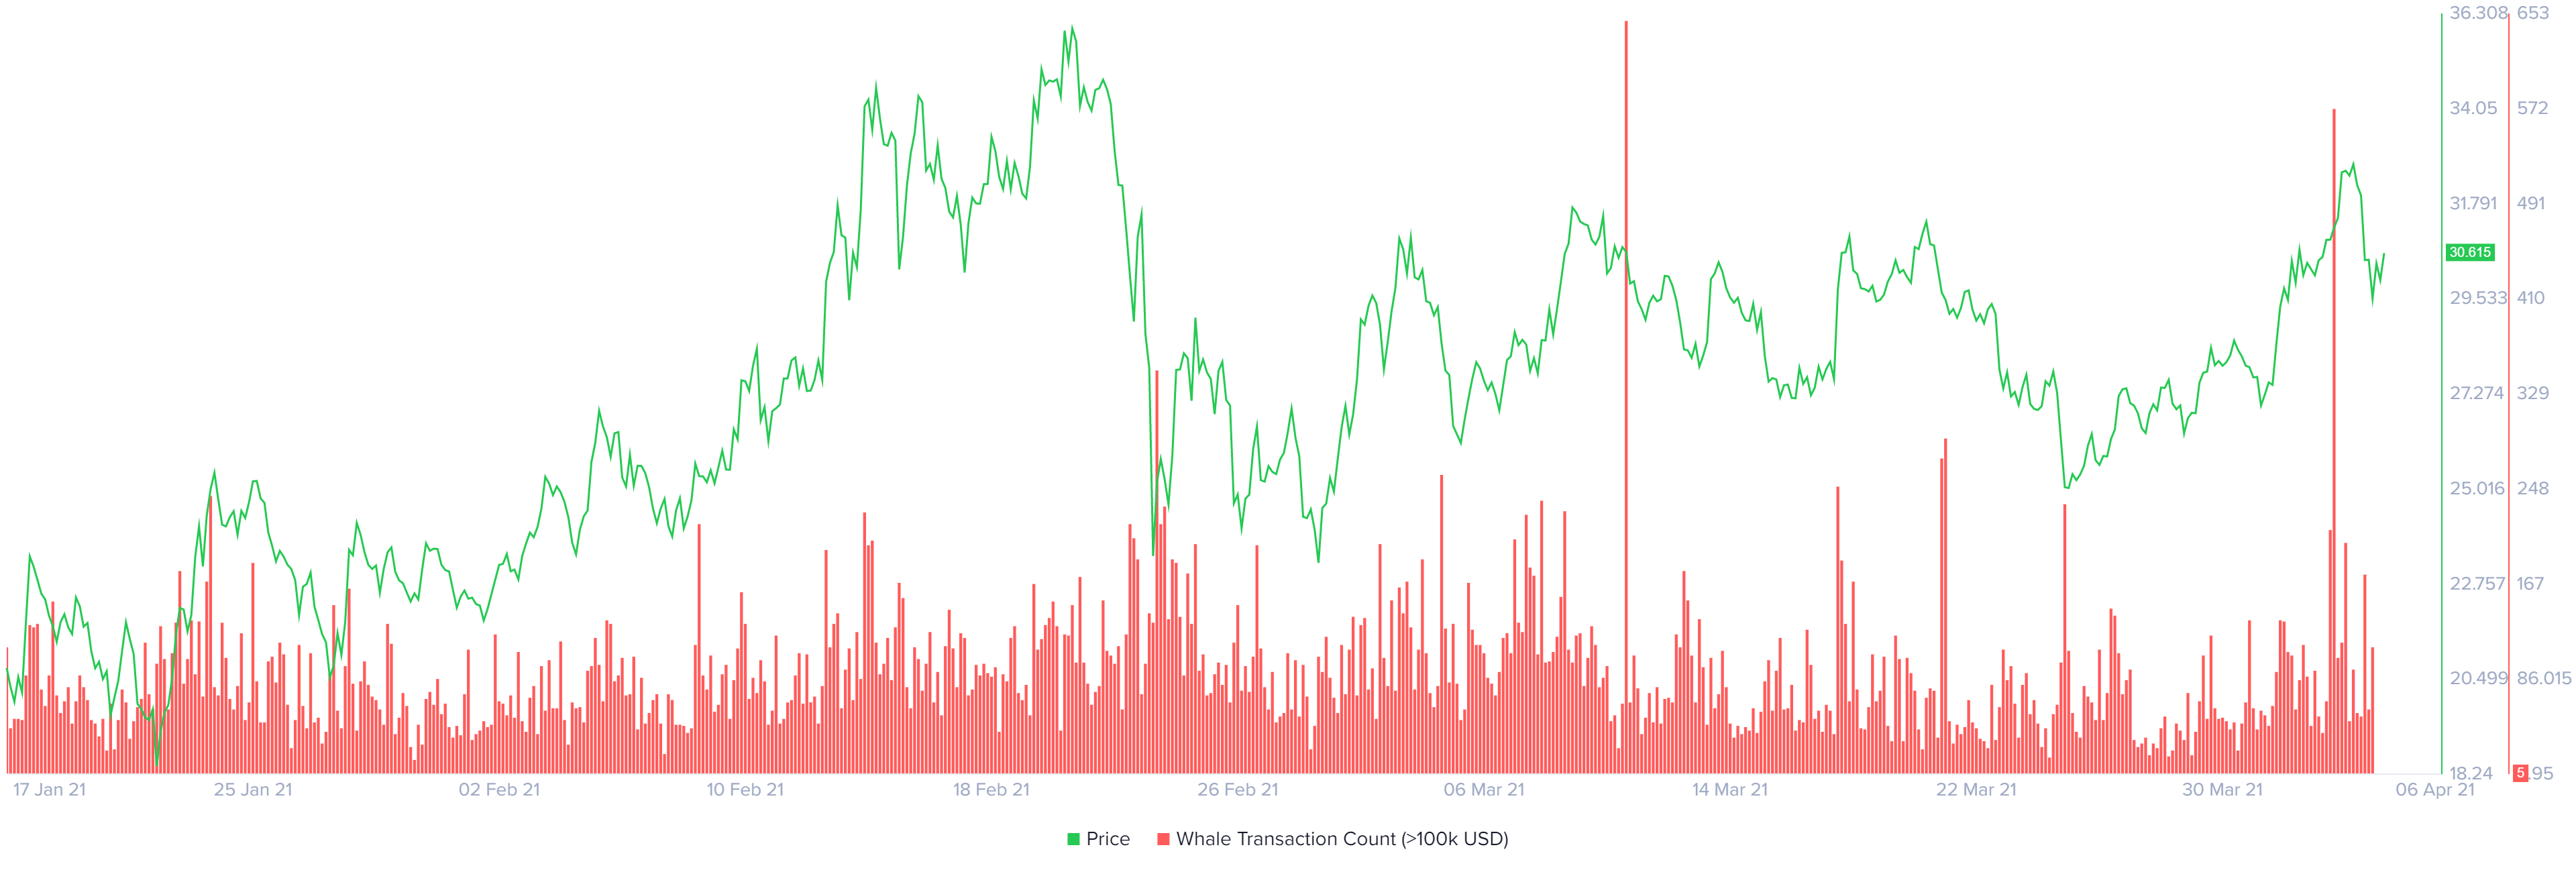 LINK whale transaction count chart